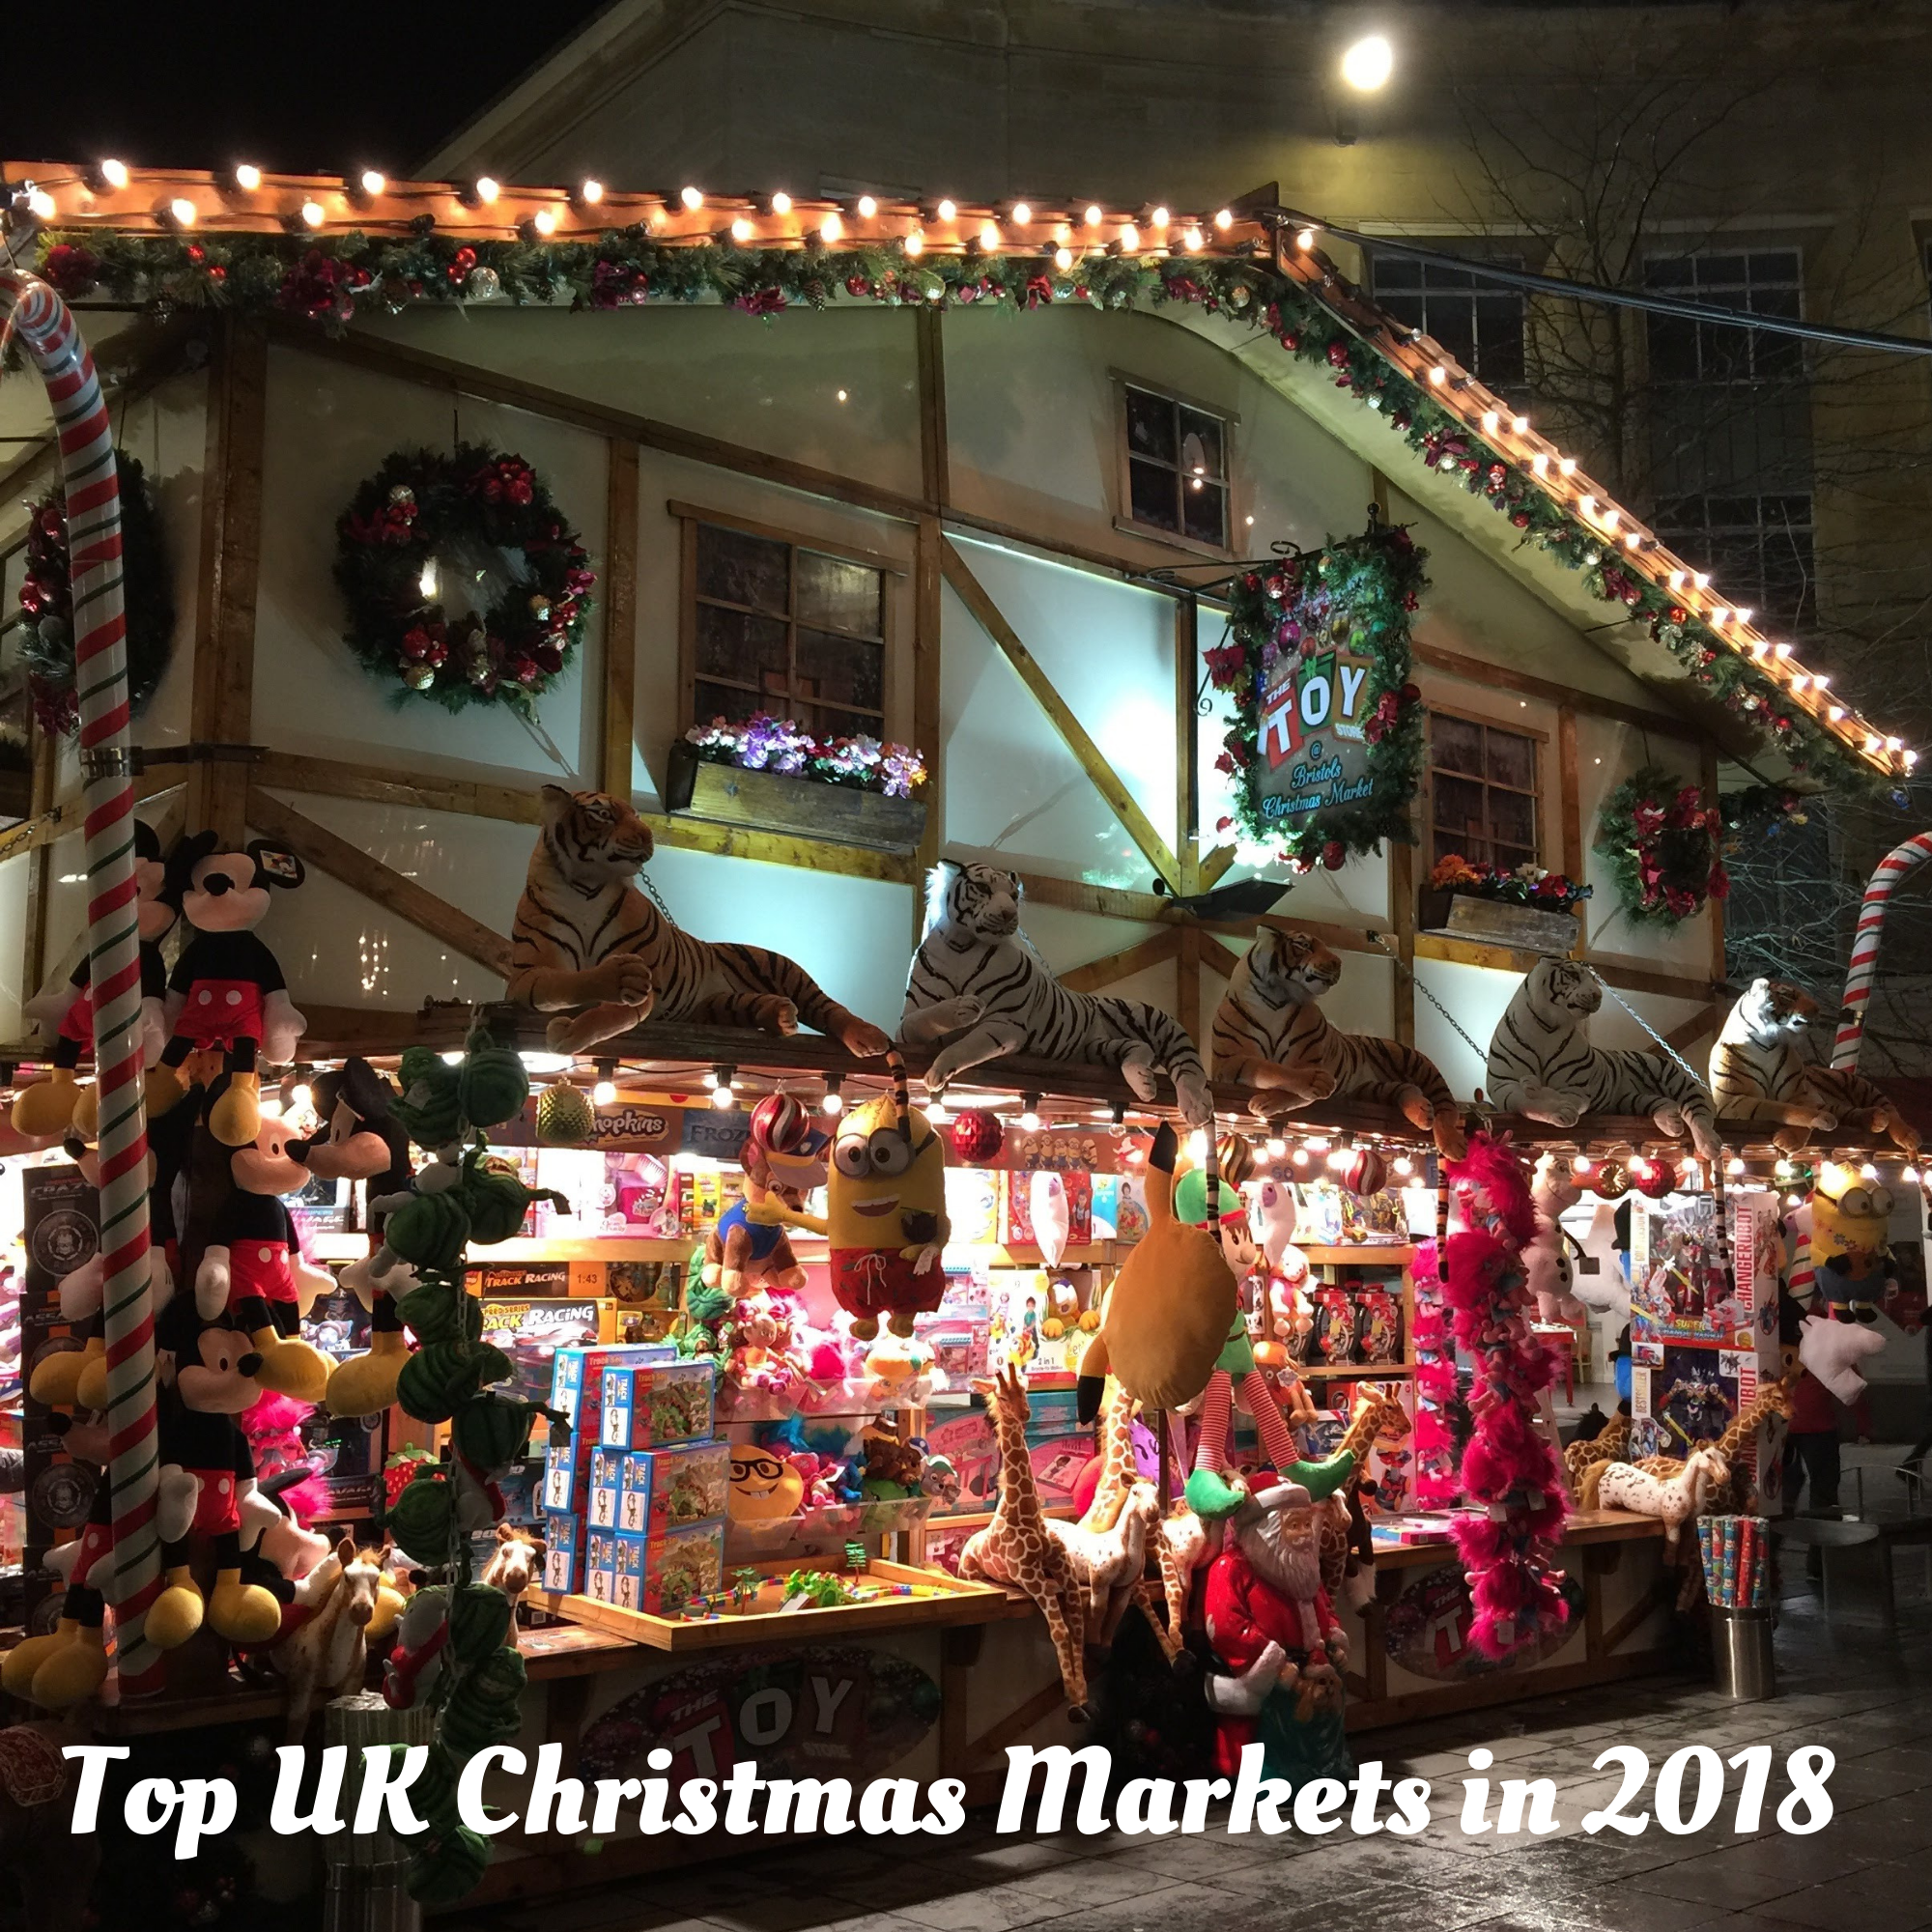 Top UK Christmas Markets in 2018